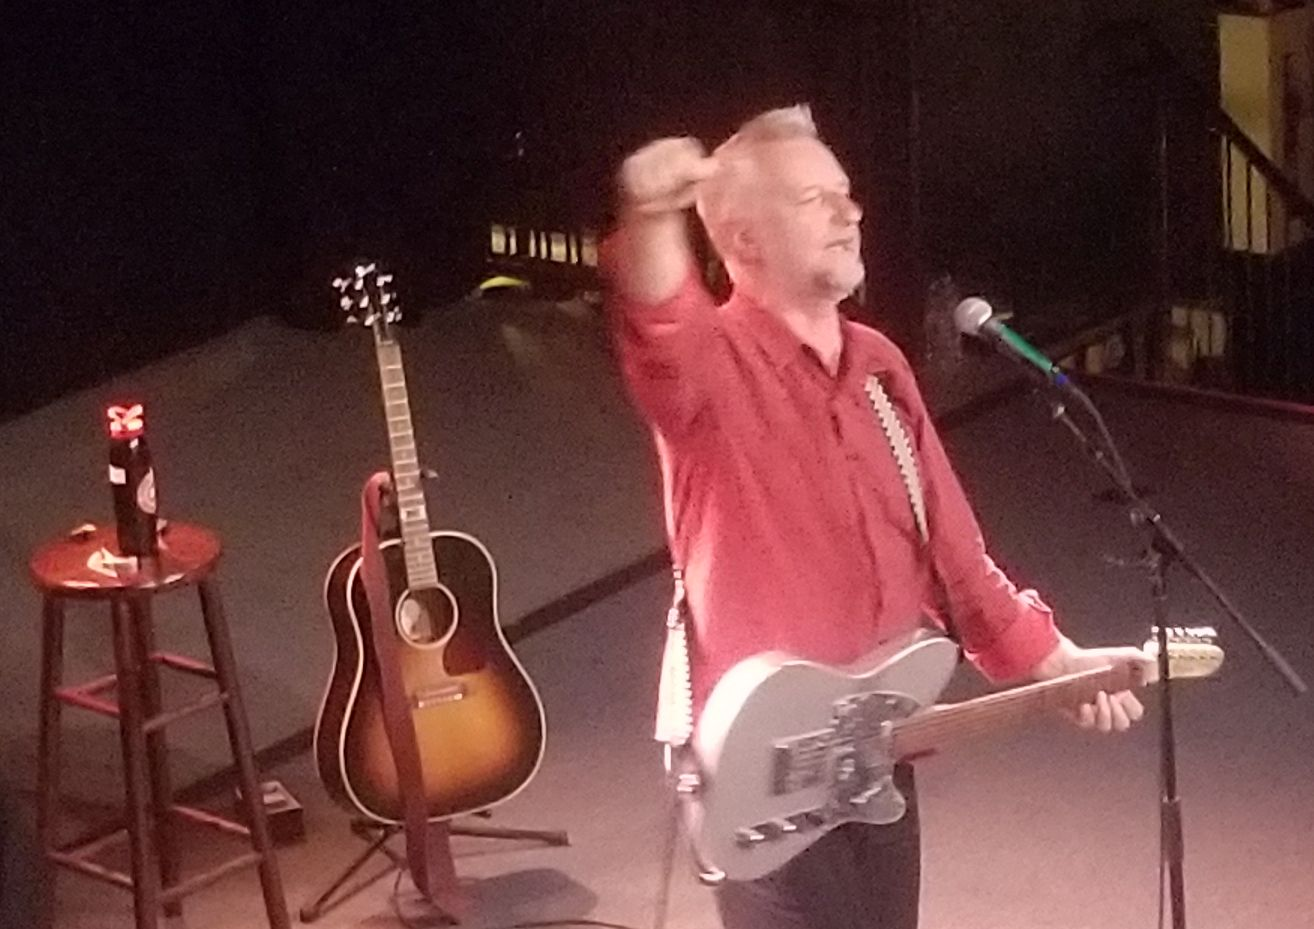 Billy Bragg at the Sinclair 10 3 2019 with Billy holding his fist in the air and singing into a microphone